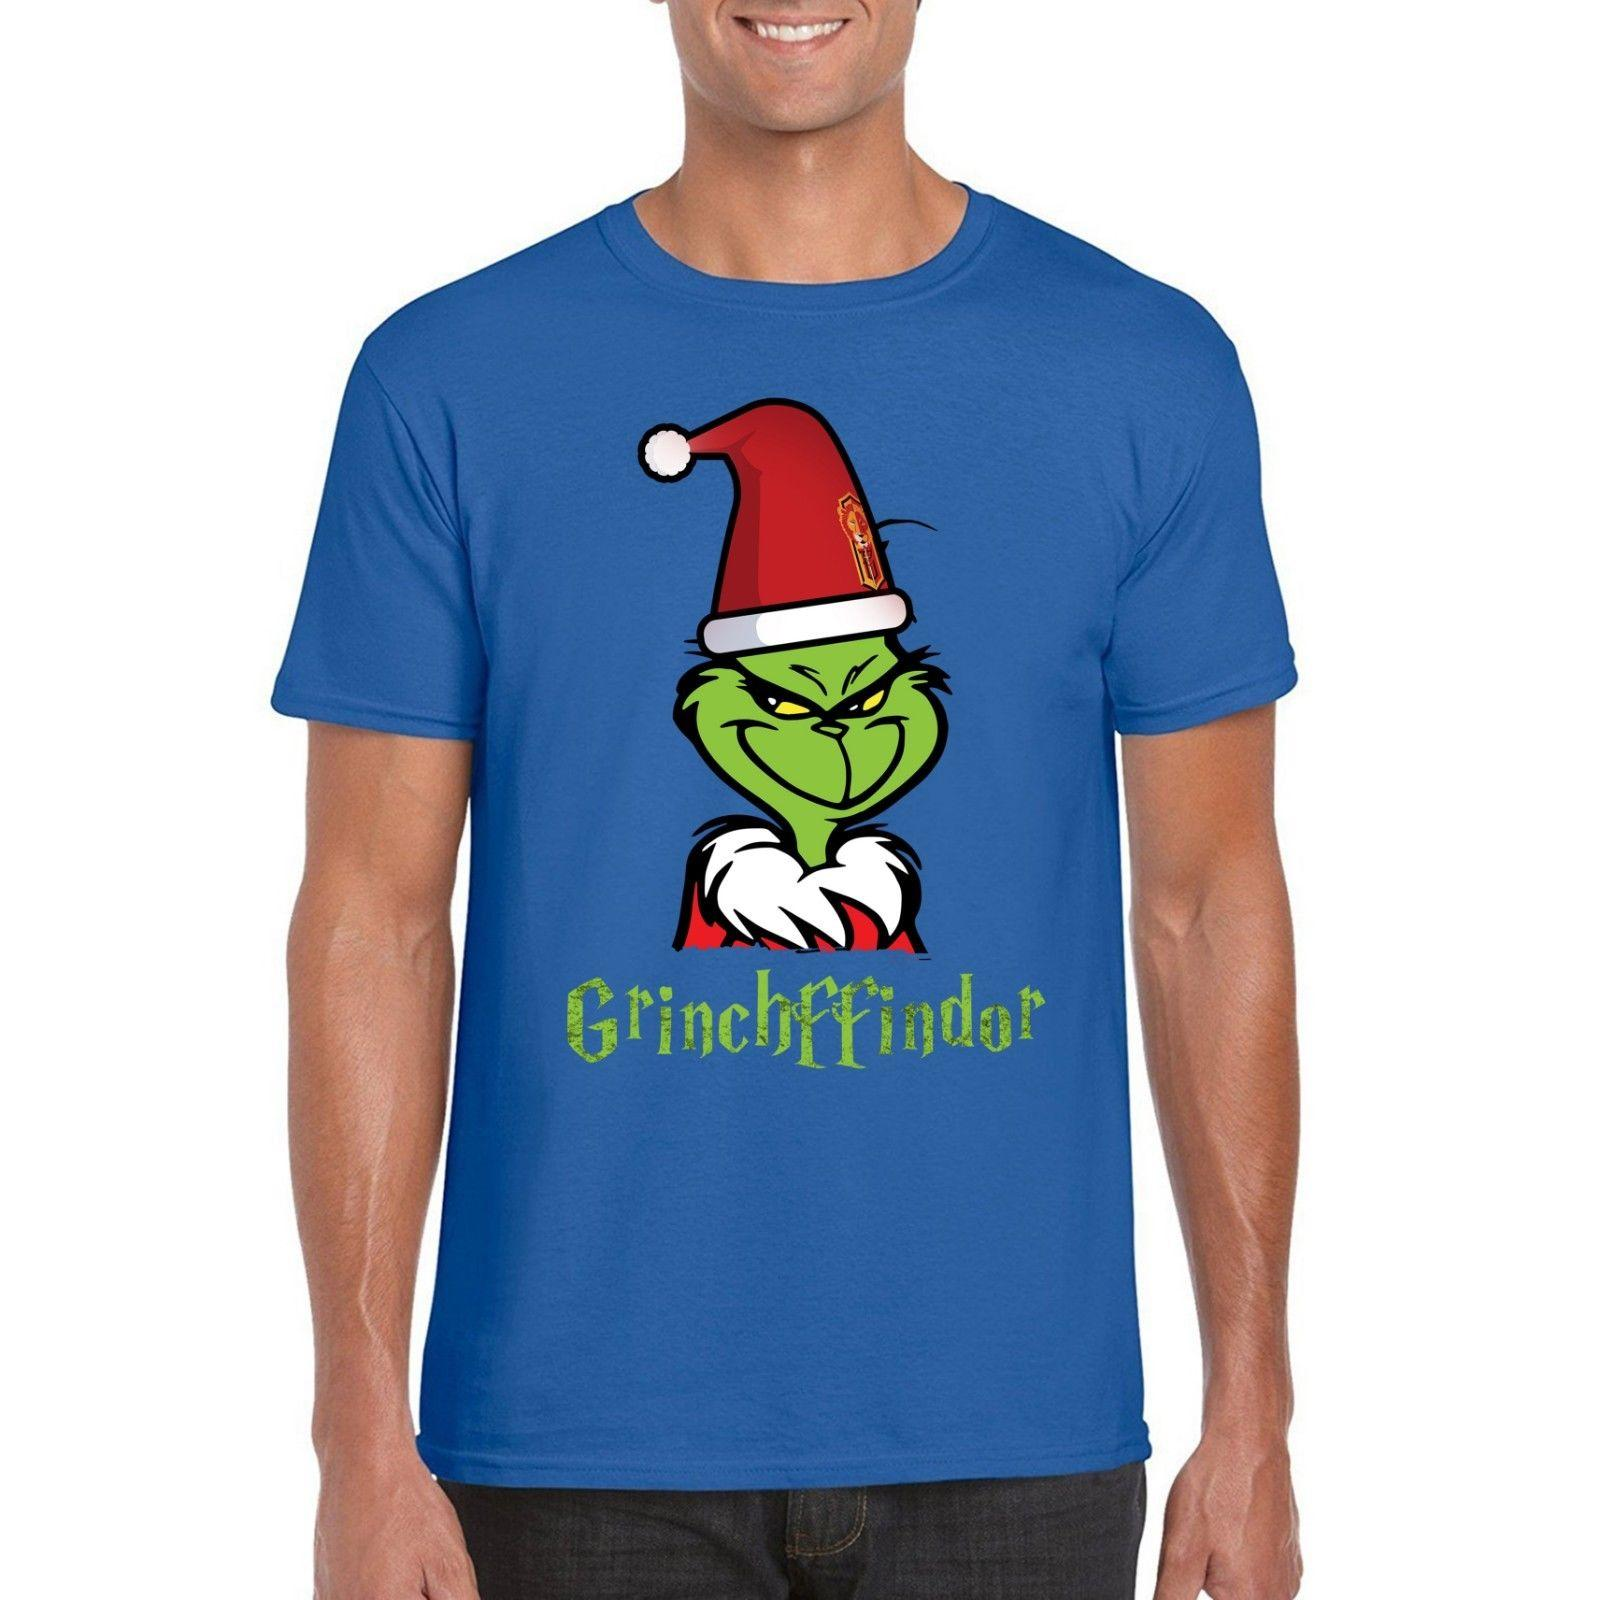 grinchffindor christmas t shirt harry potter grinch festive parody tee top t shirts sale novelty shirts from viptshirt 1099 dhgatecom